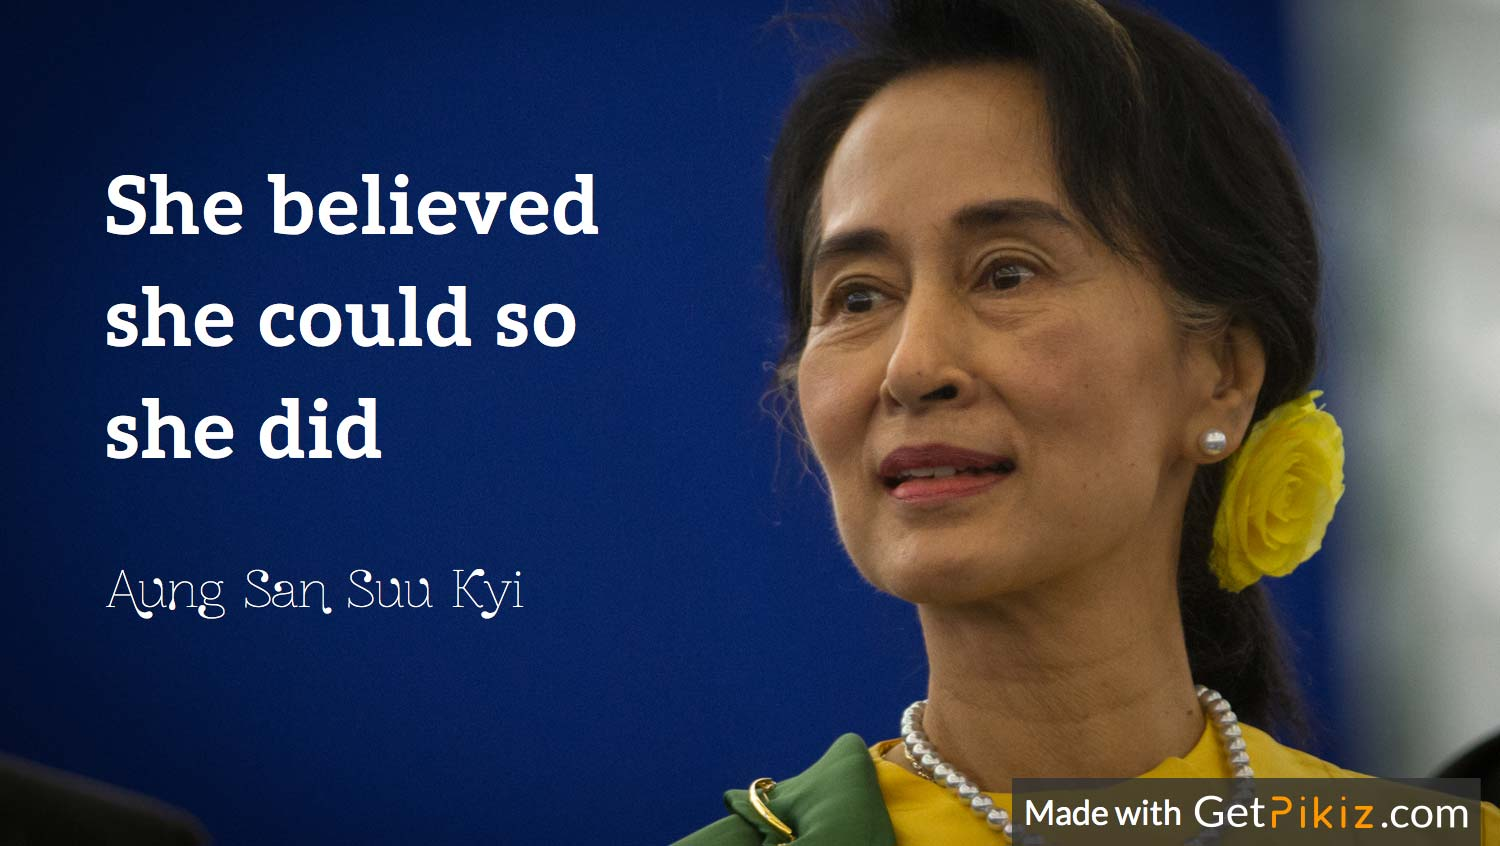 She believed she could so she did. - Aung San Suu Kyi